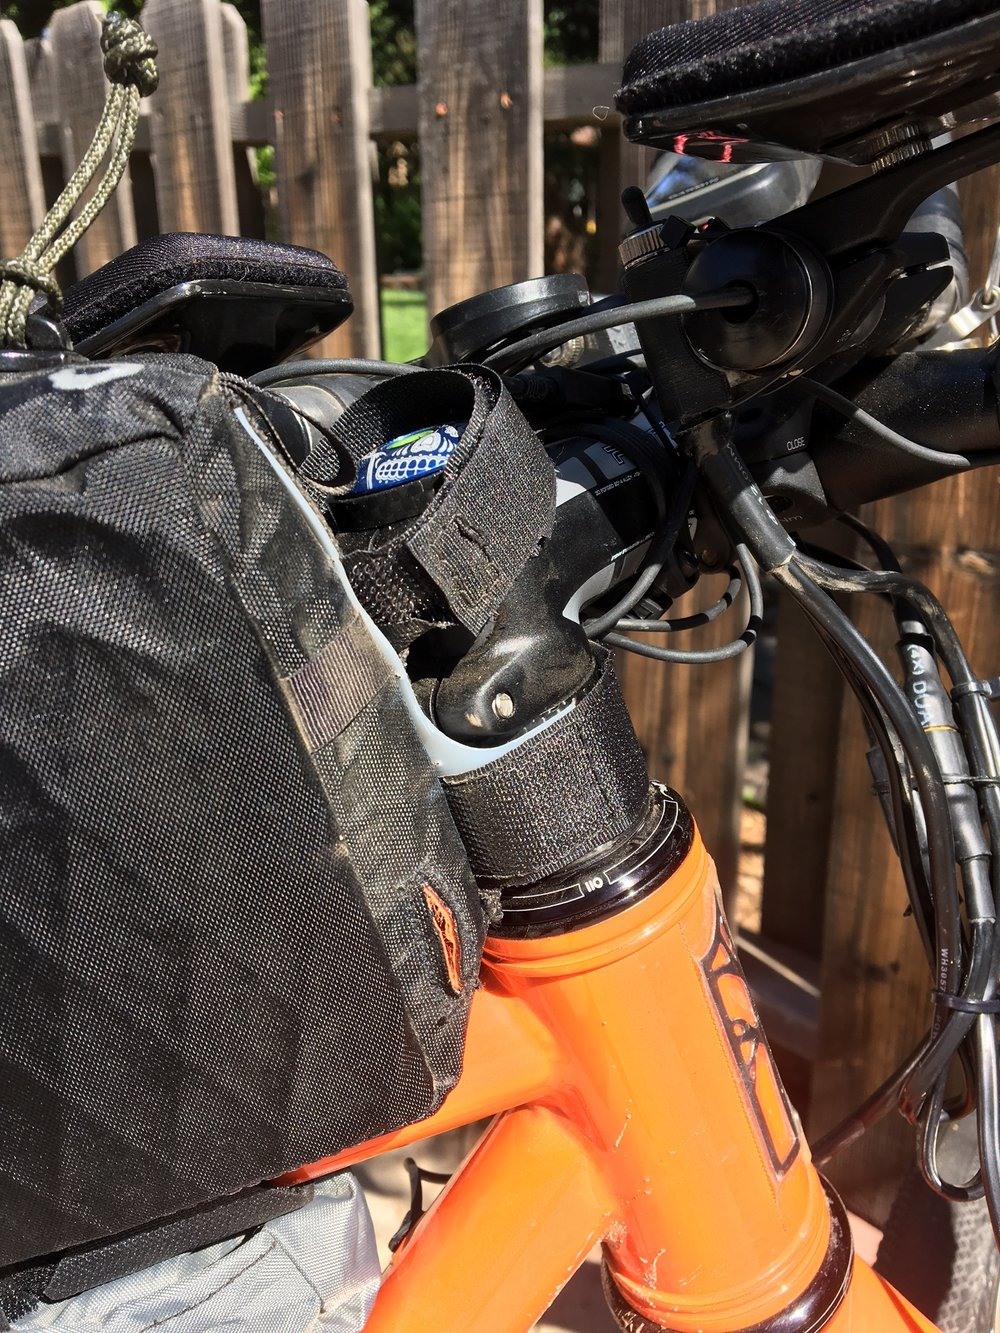 Dual front straps keep the tall bag nice and stable.